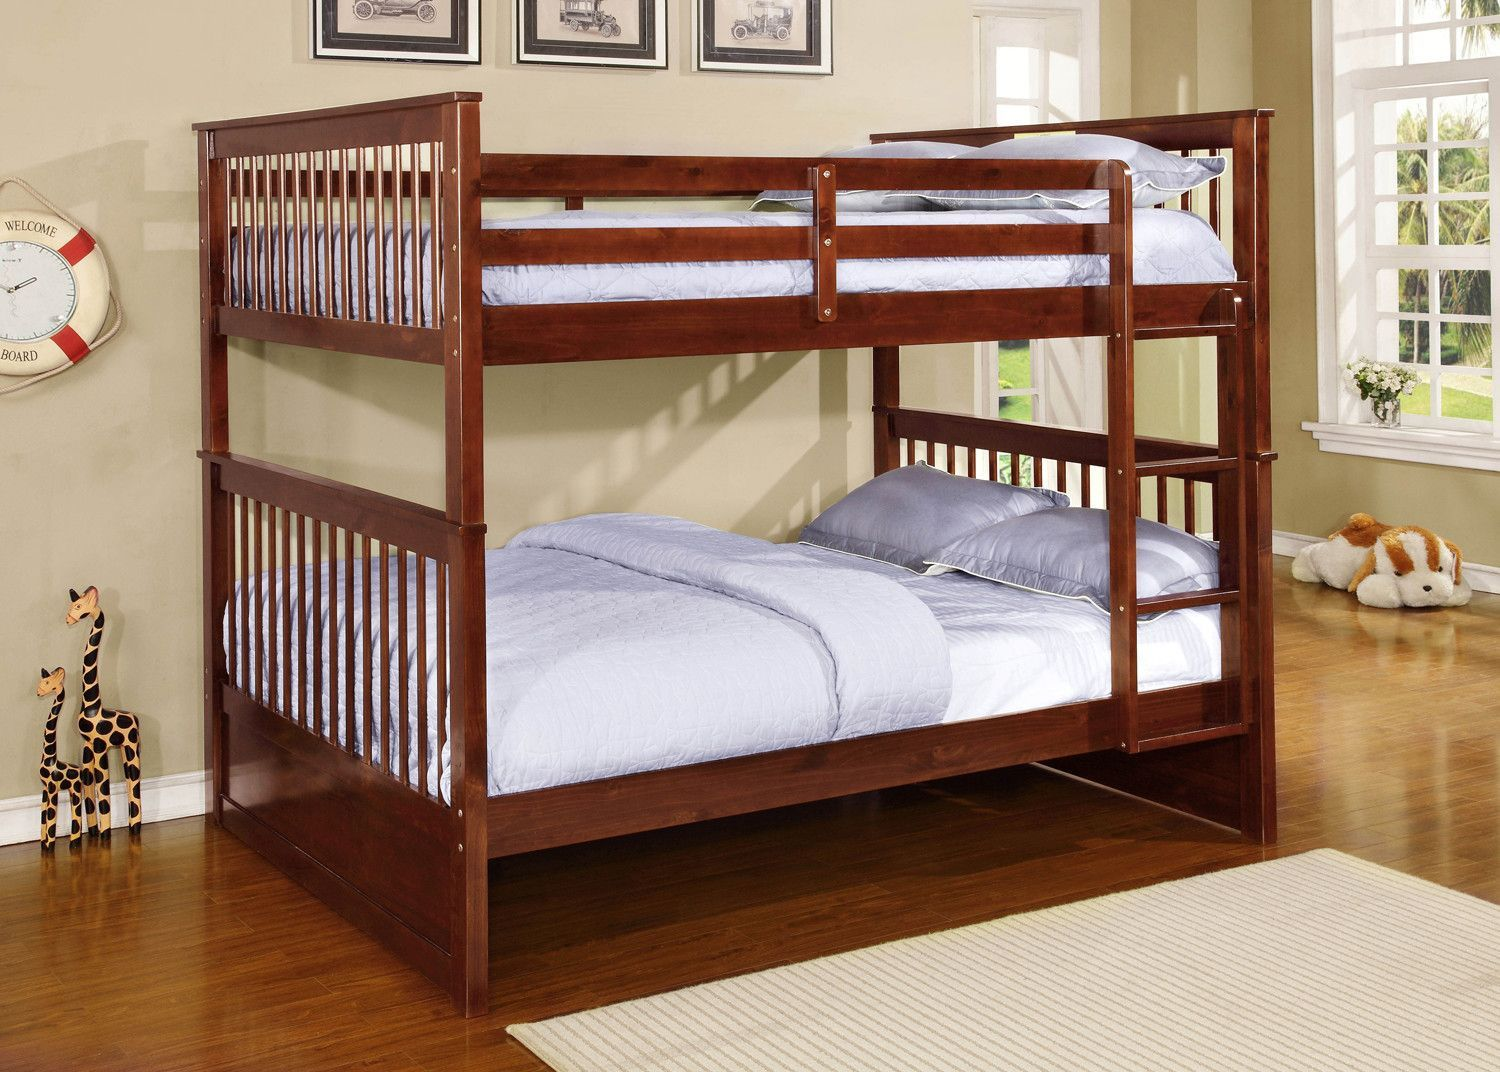 Otis Full Over Full Bunk Bed Bunk Bed With Trundle Bunk Beds